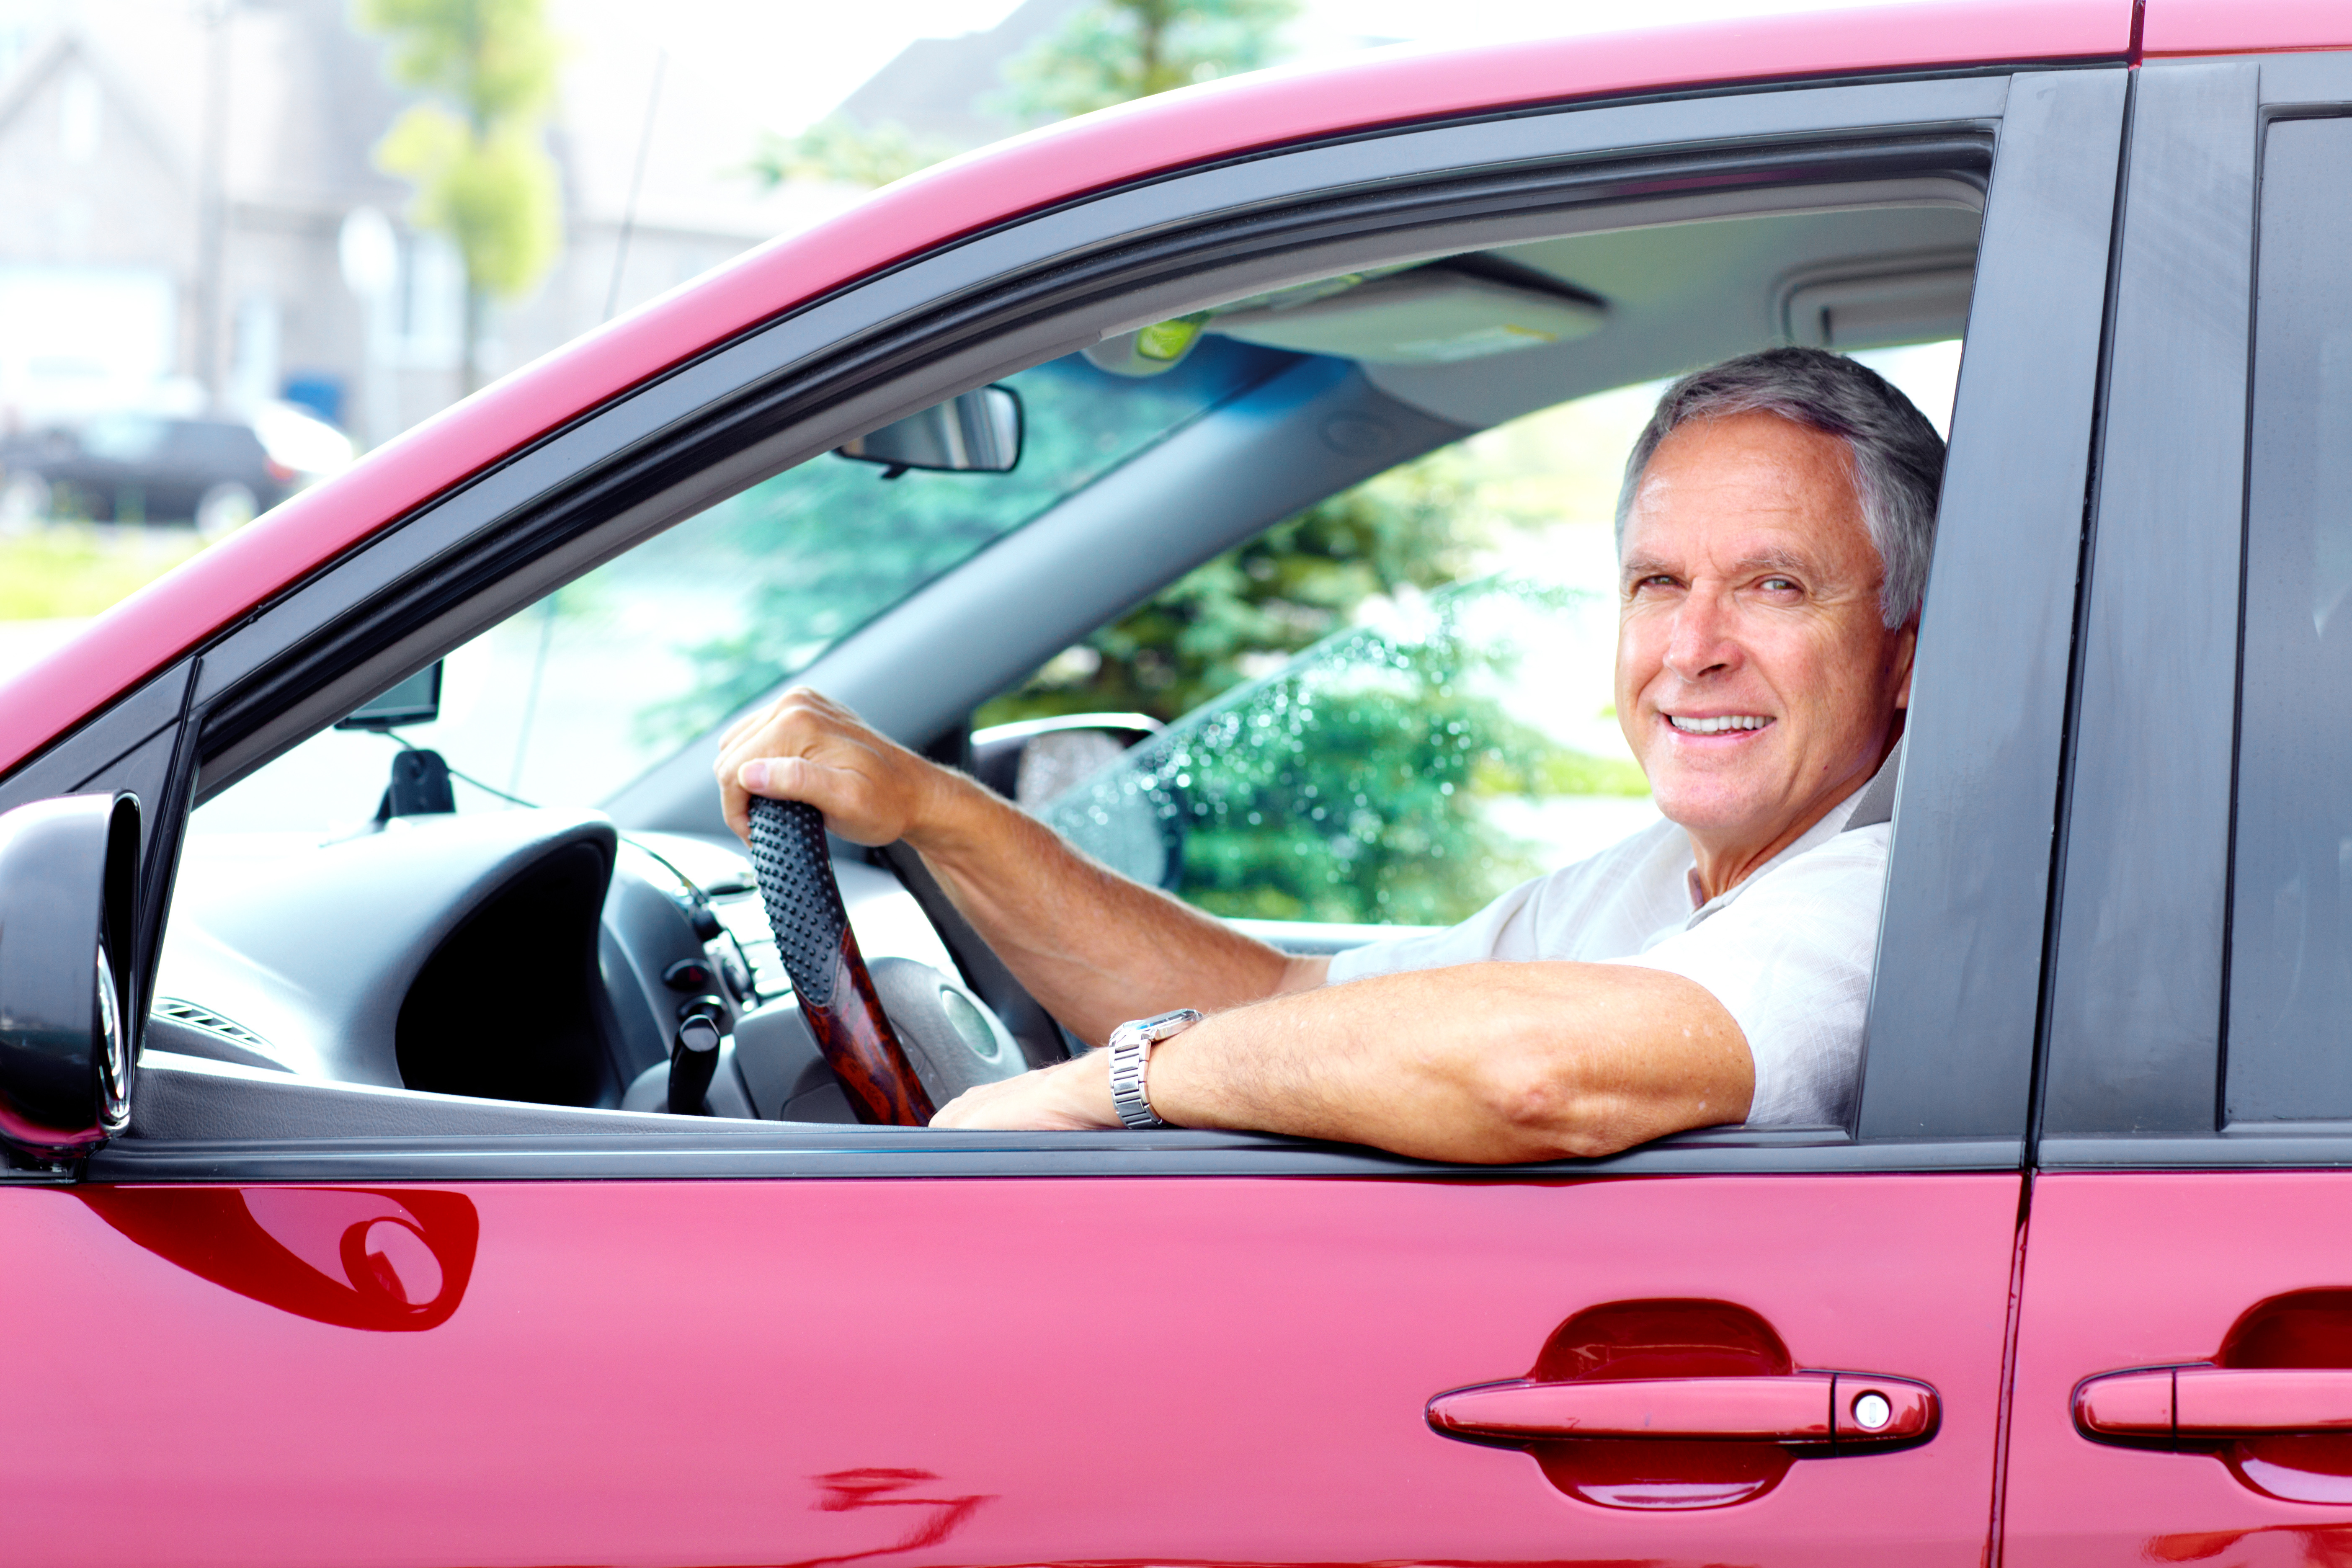 Senior driver happily driving his car with a renewed license